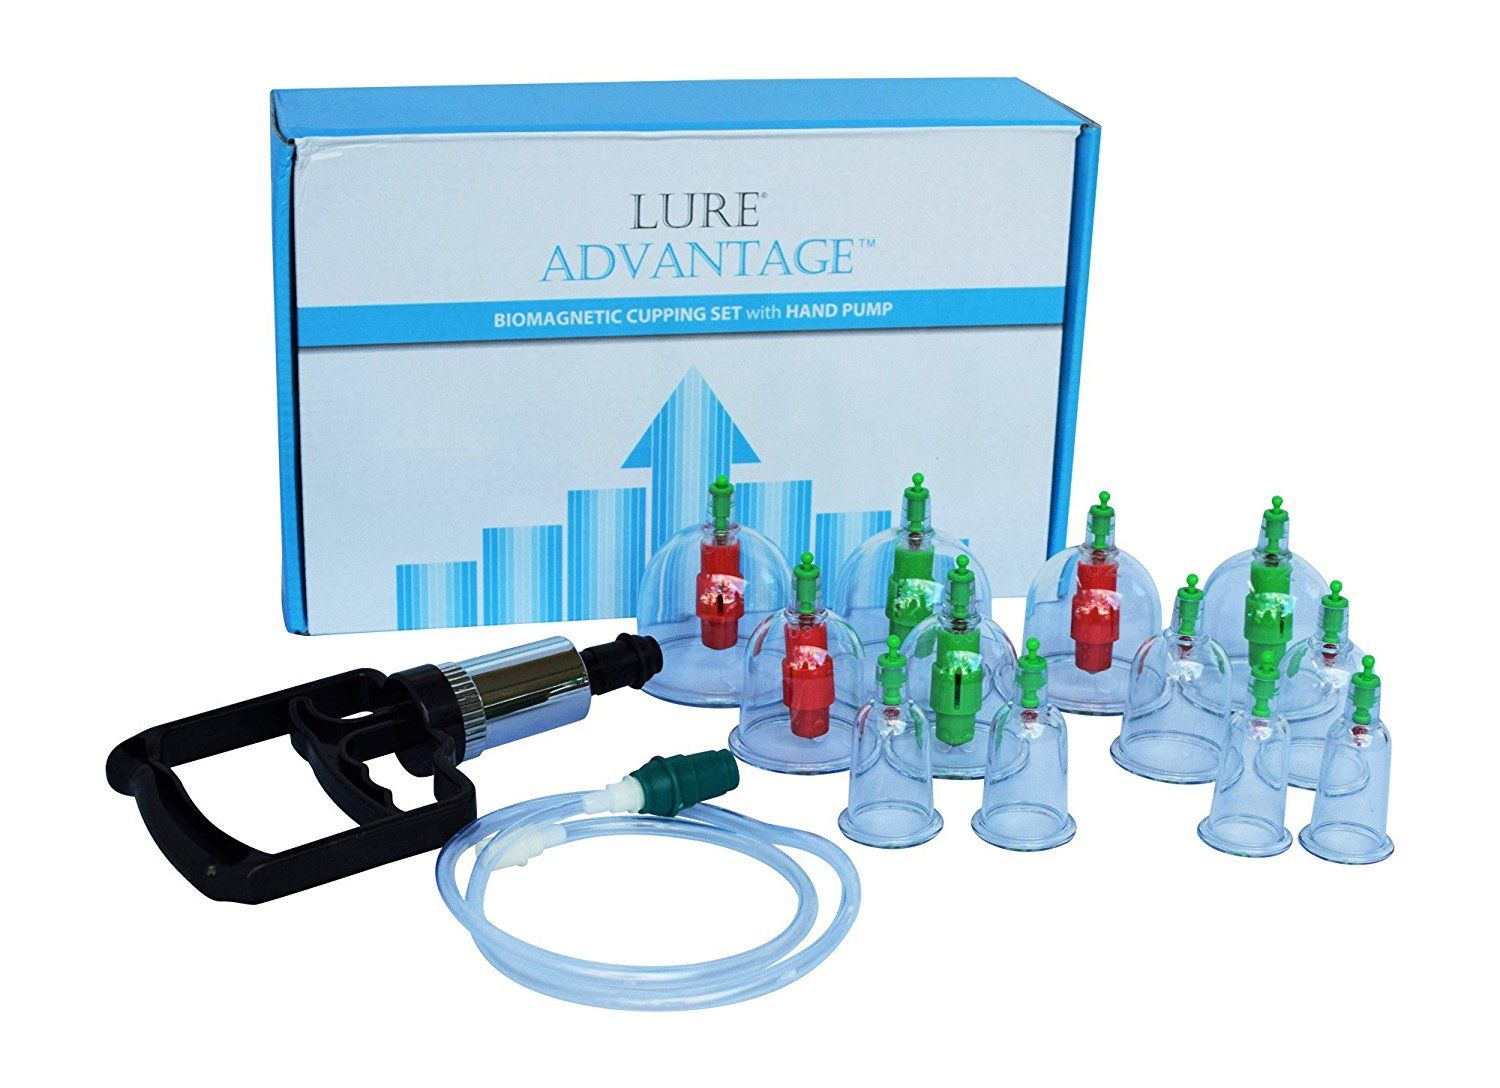 40+ Therapeutic vacuum cupping set with suction pump ideas